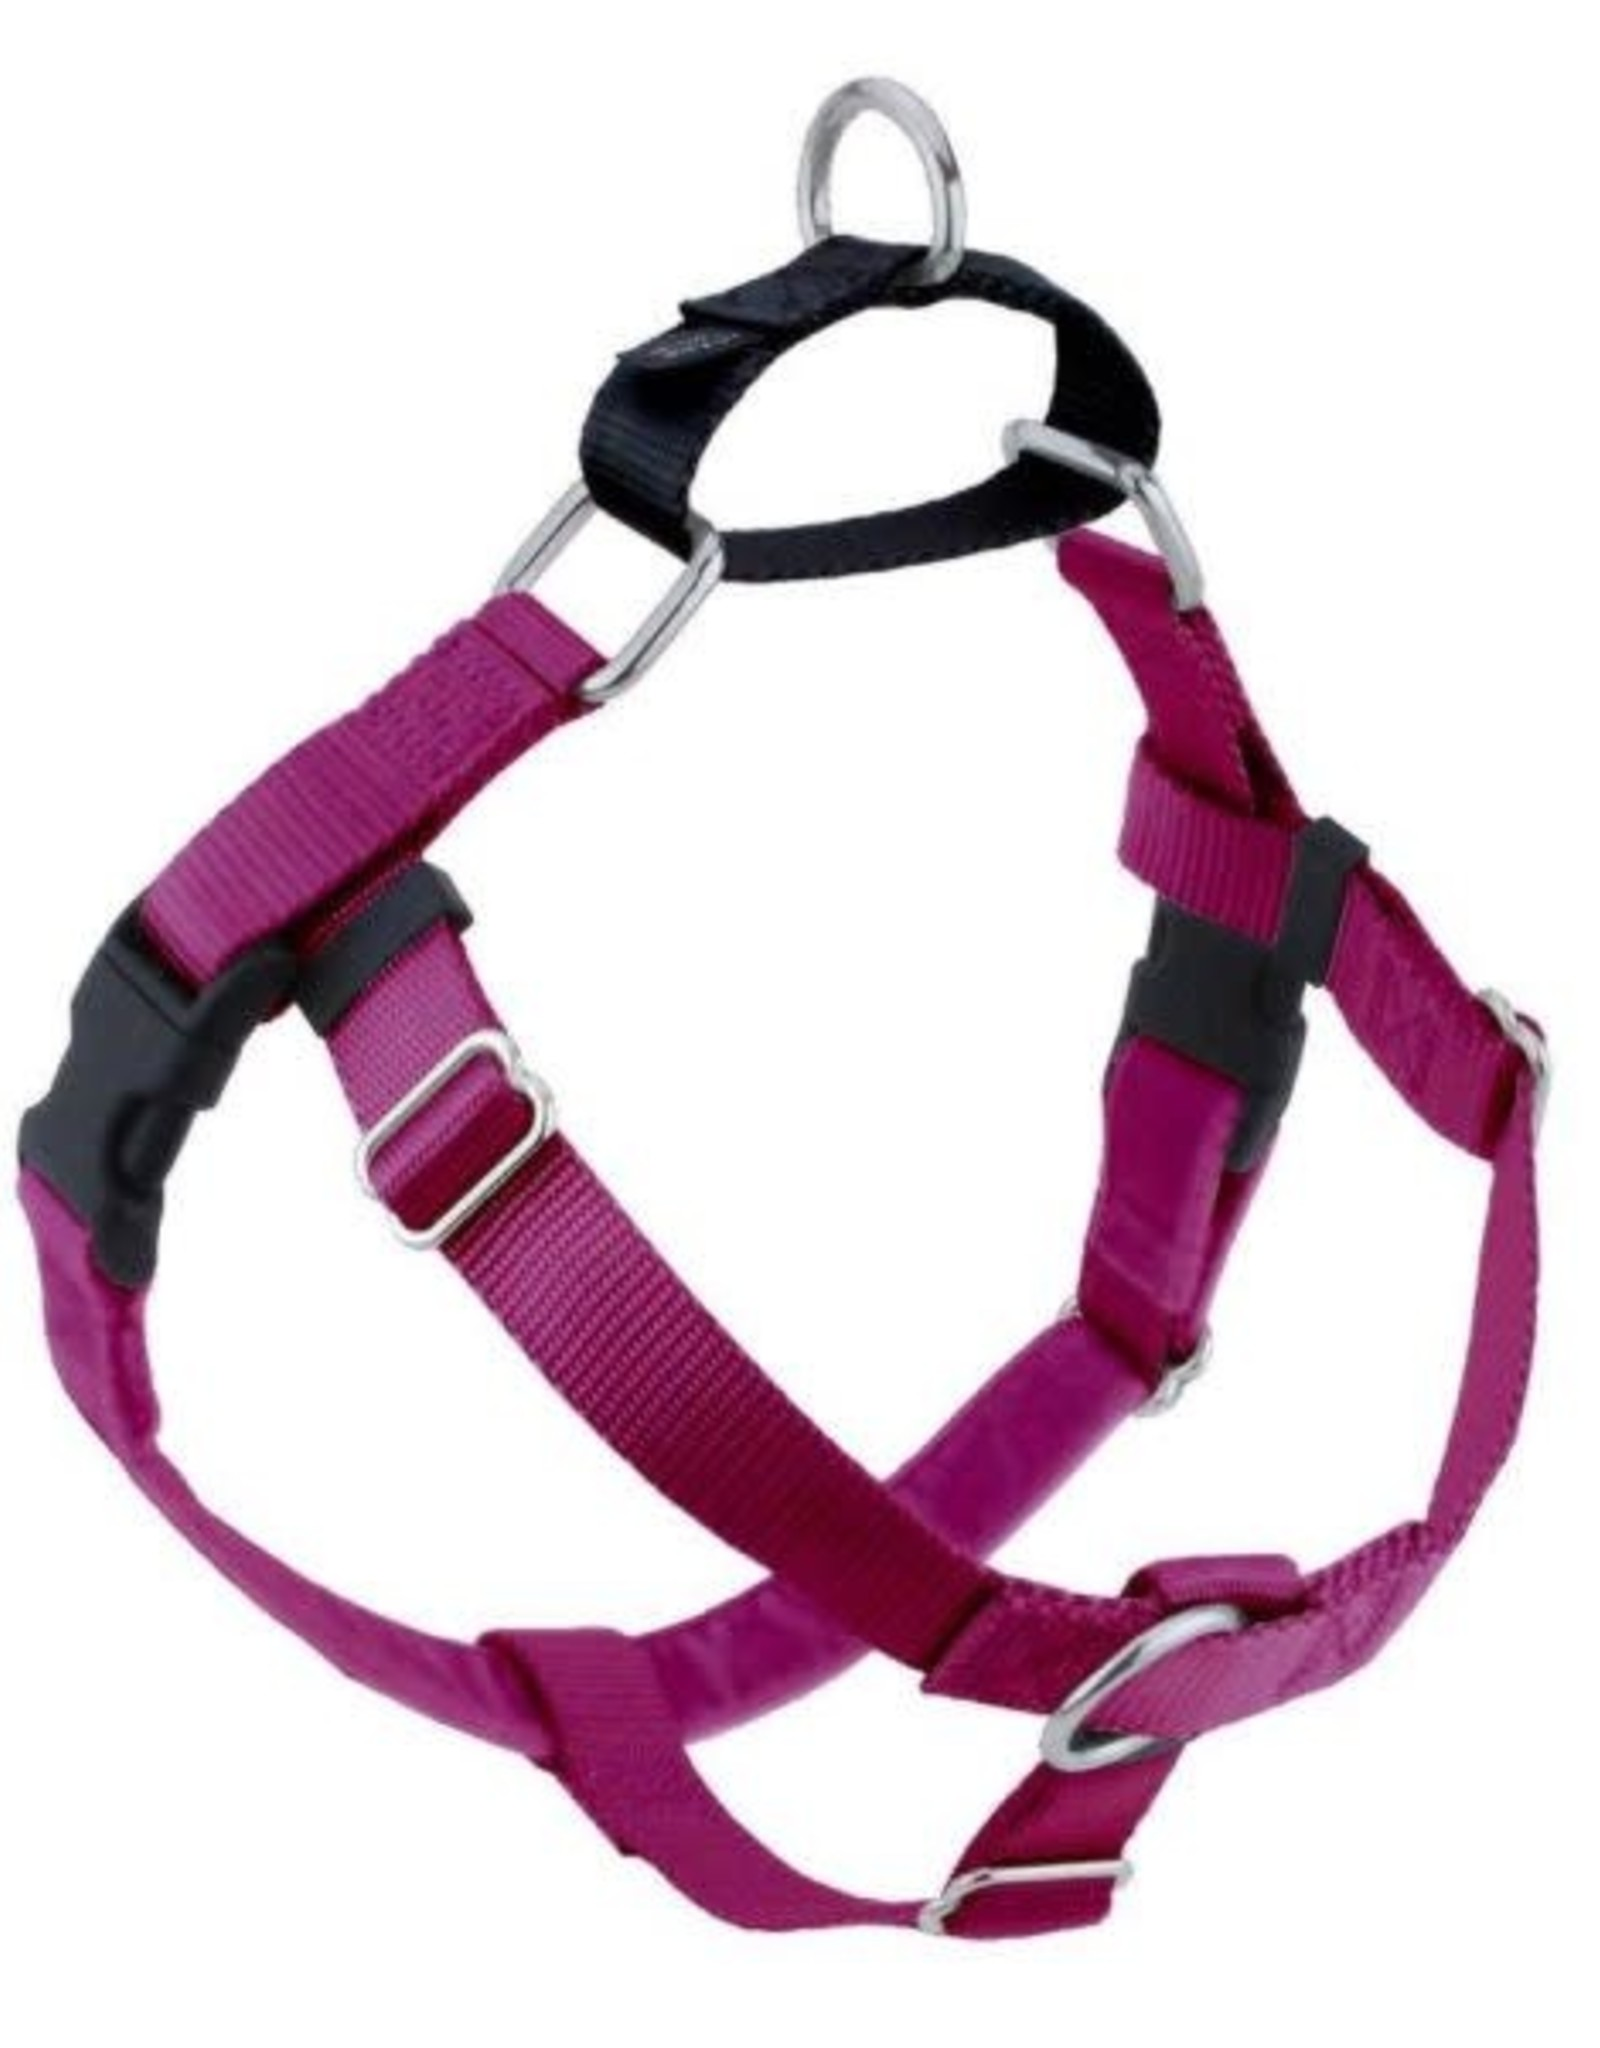 2 Hounds Design Freedom Harness No-Pull Harness Deluxe